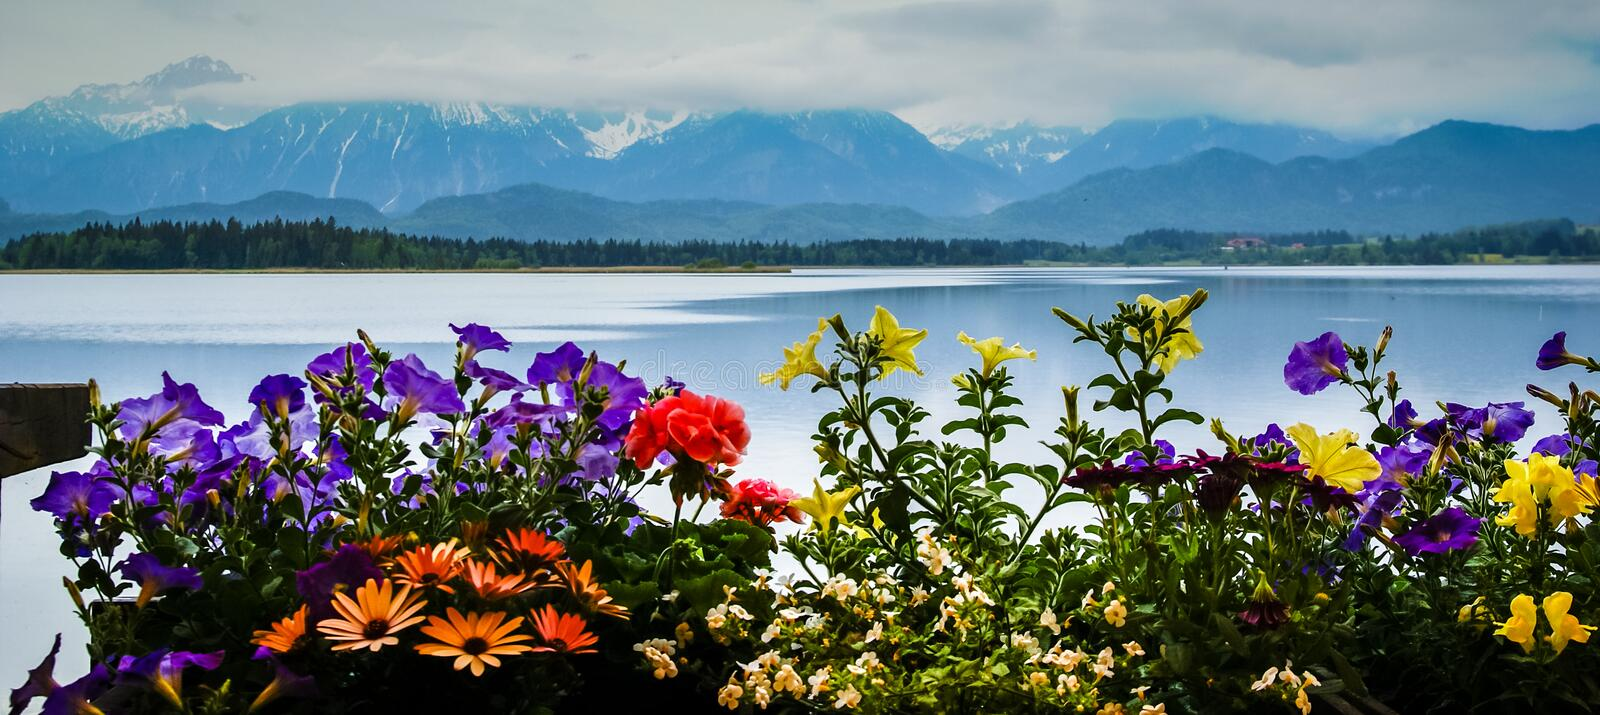 Scenic landscape with lake and flowers in Bavaria stock images